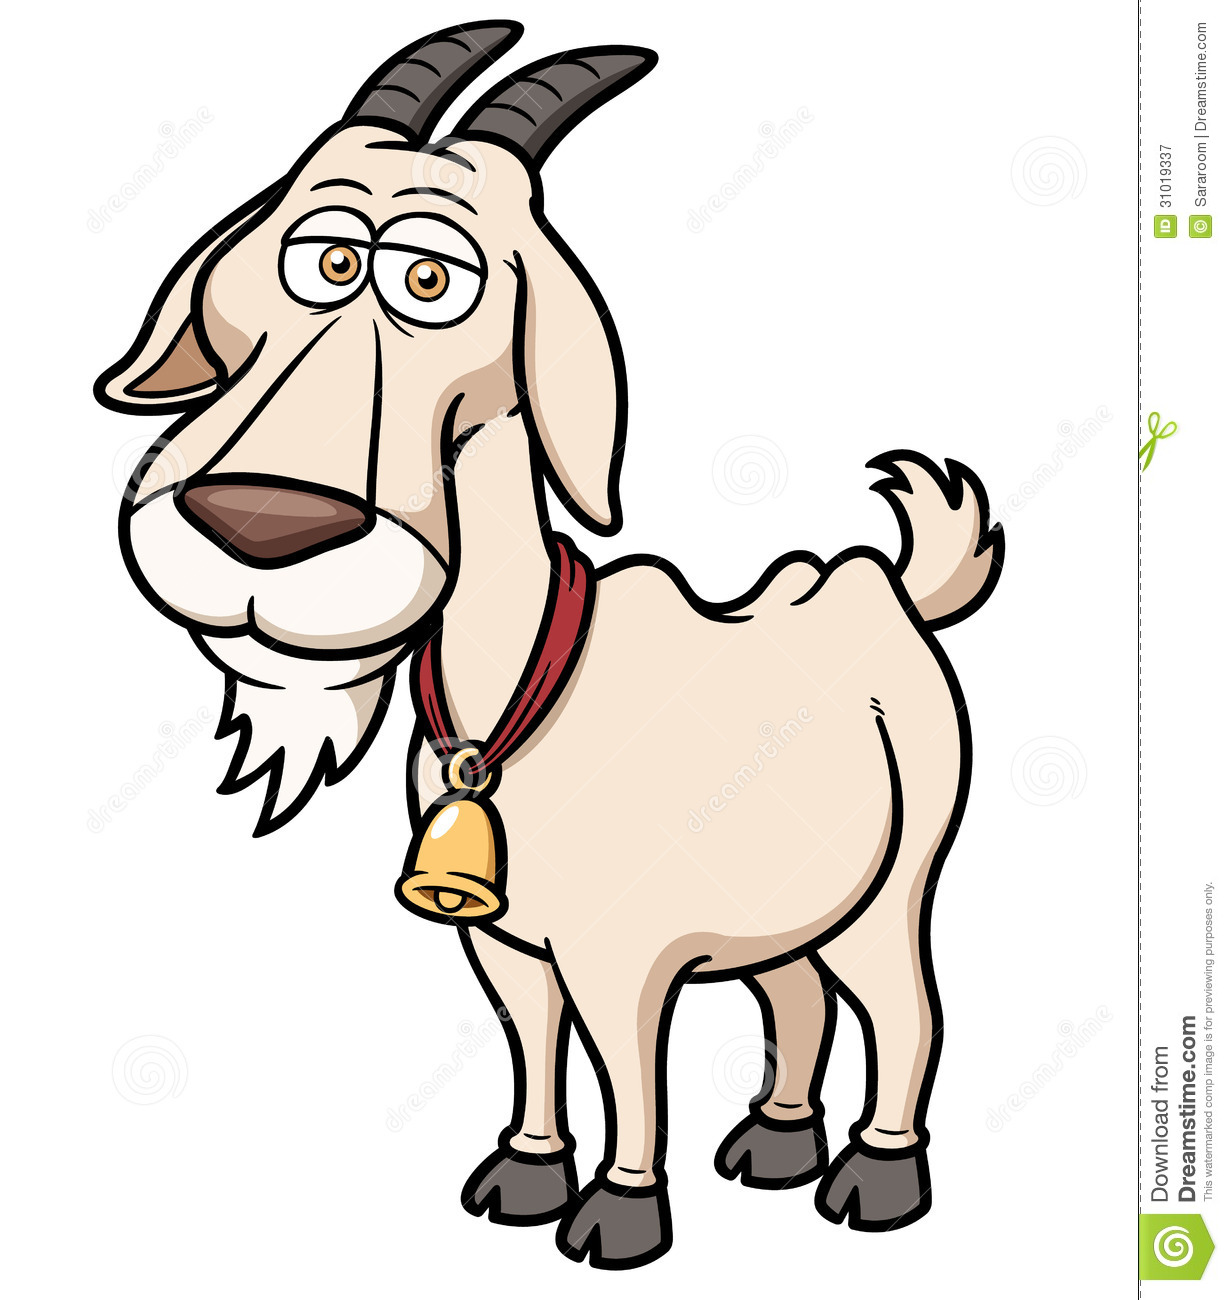 Cartoon Goat Clipart.